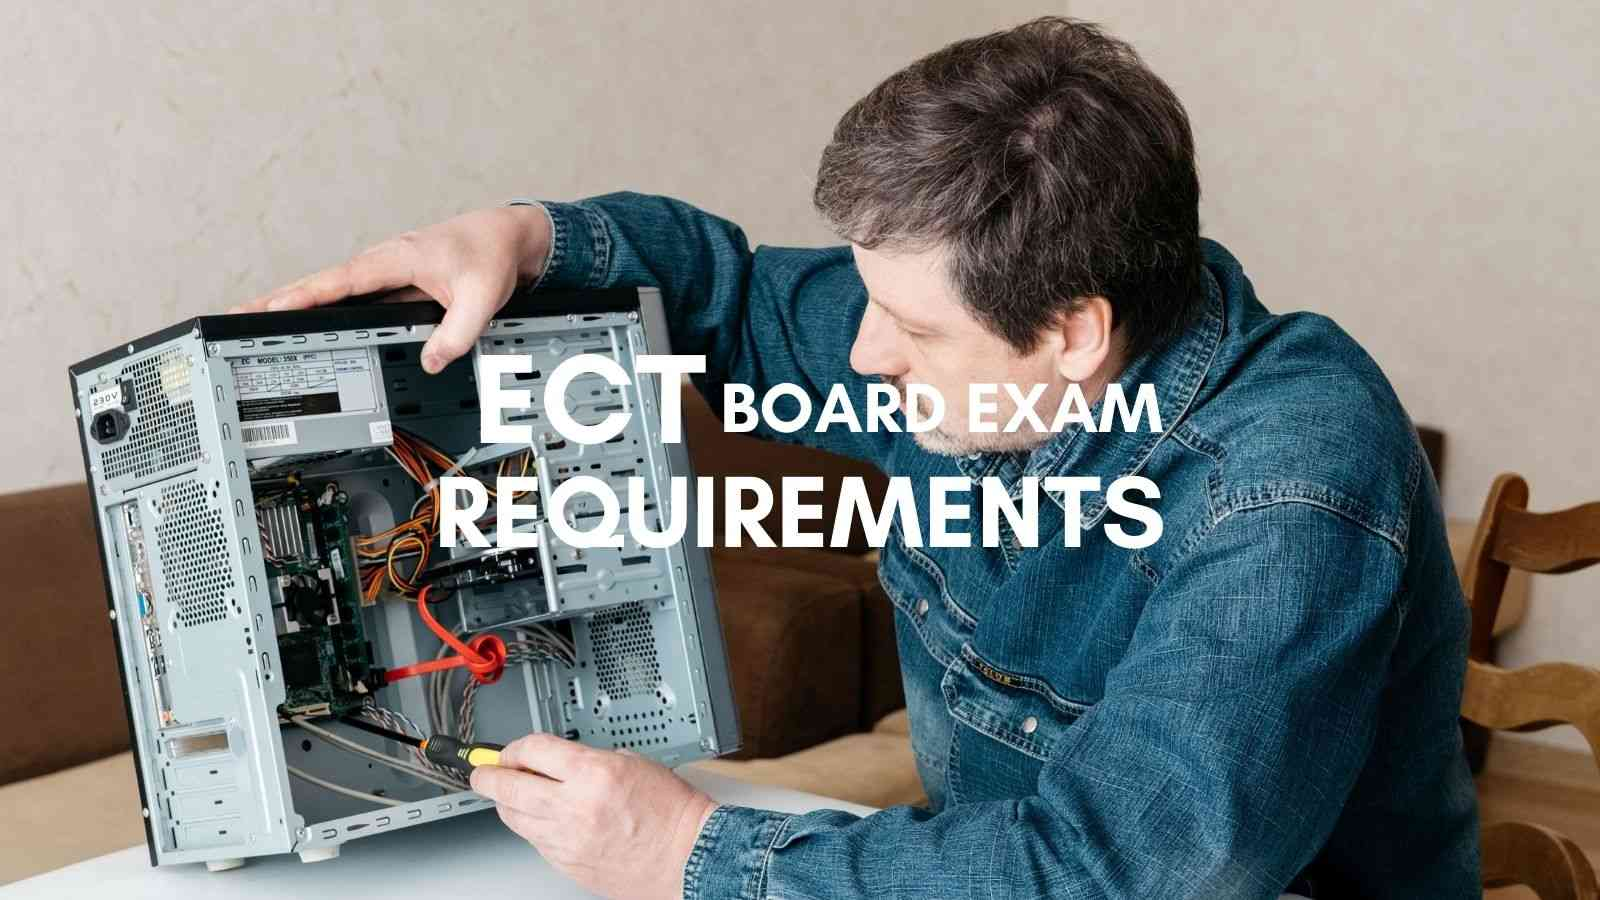 ect board exam requirements philippines